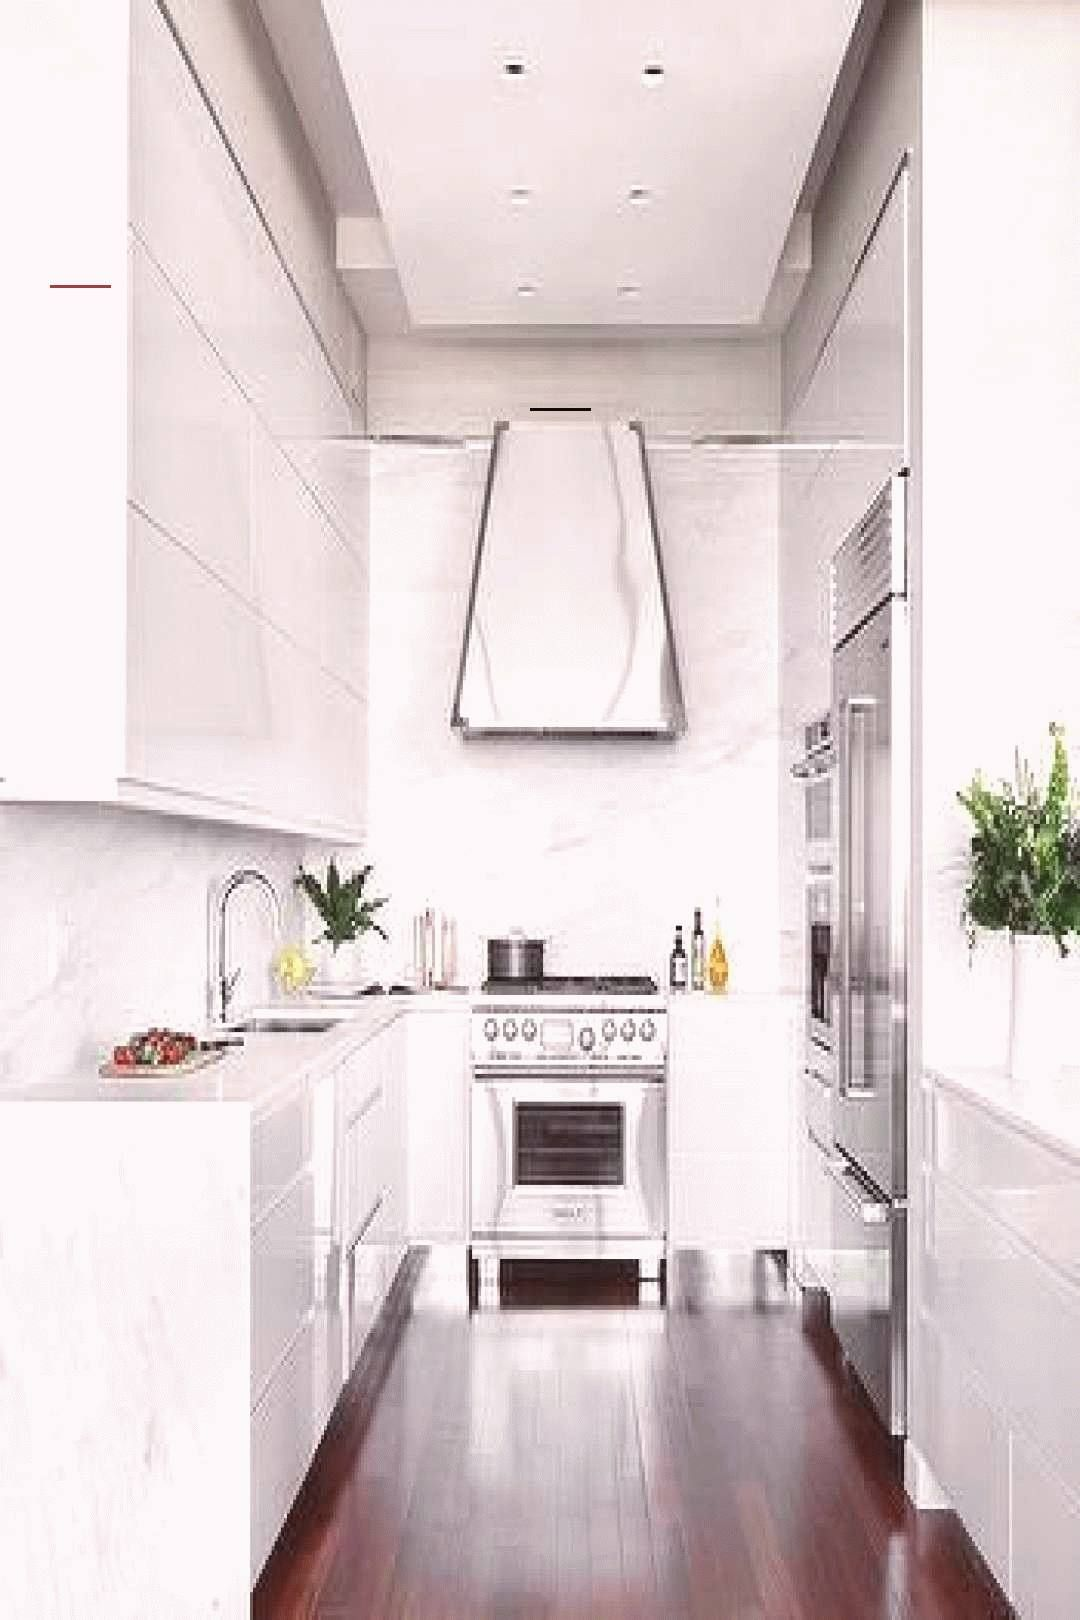 Glossy White Lacquer Cabinets With White Quartz Waterfall Countertop Glossy White Lacquer Cabinets Waterfallcountertop In 2020 House Keuken